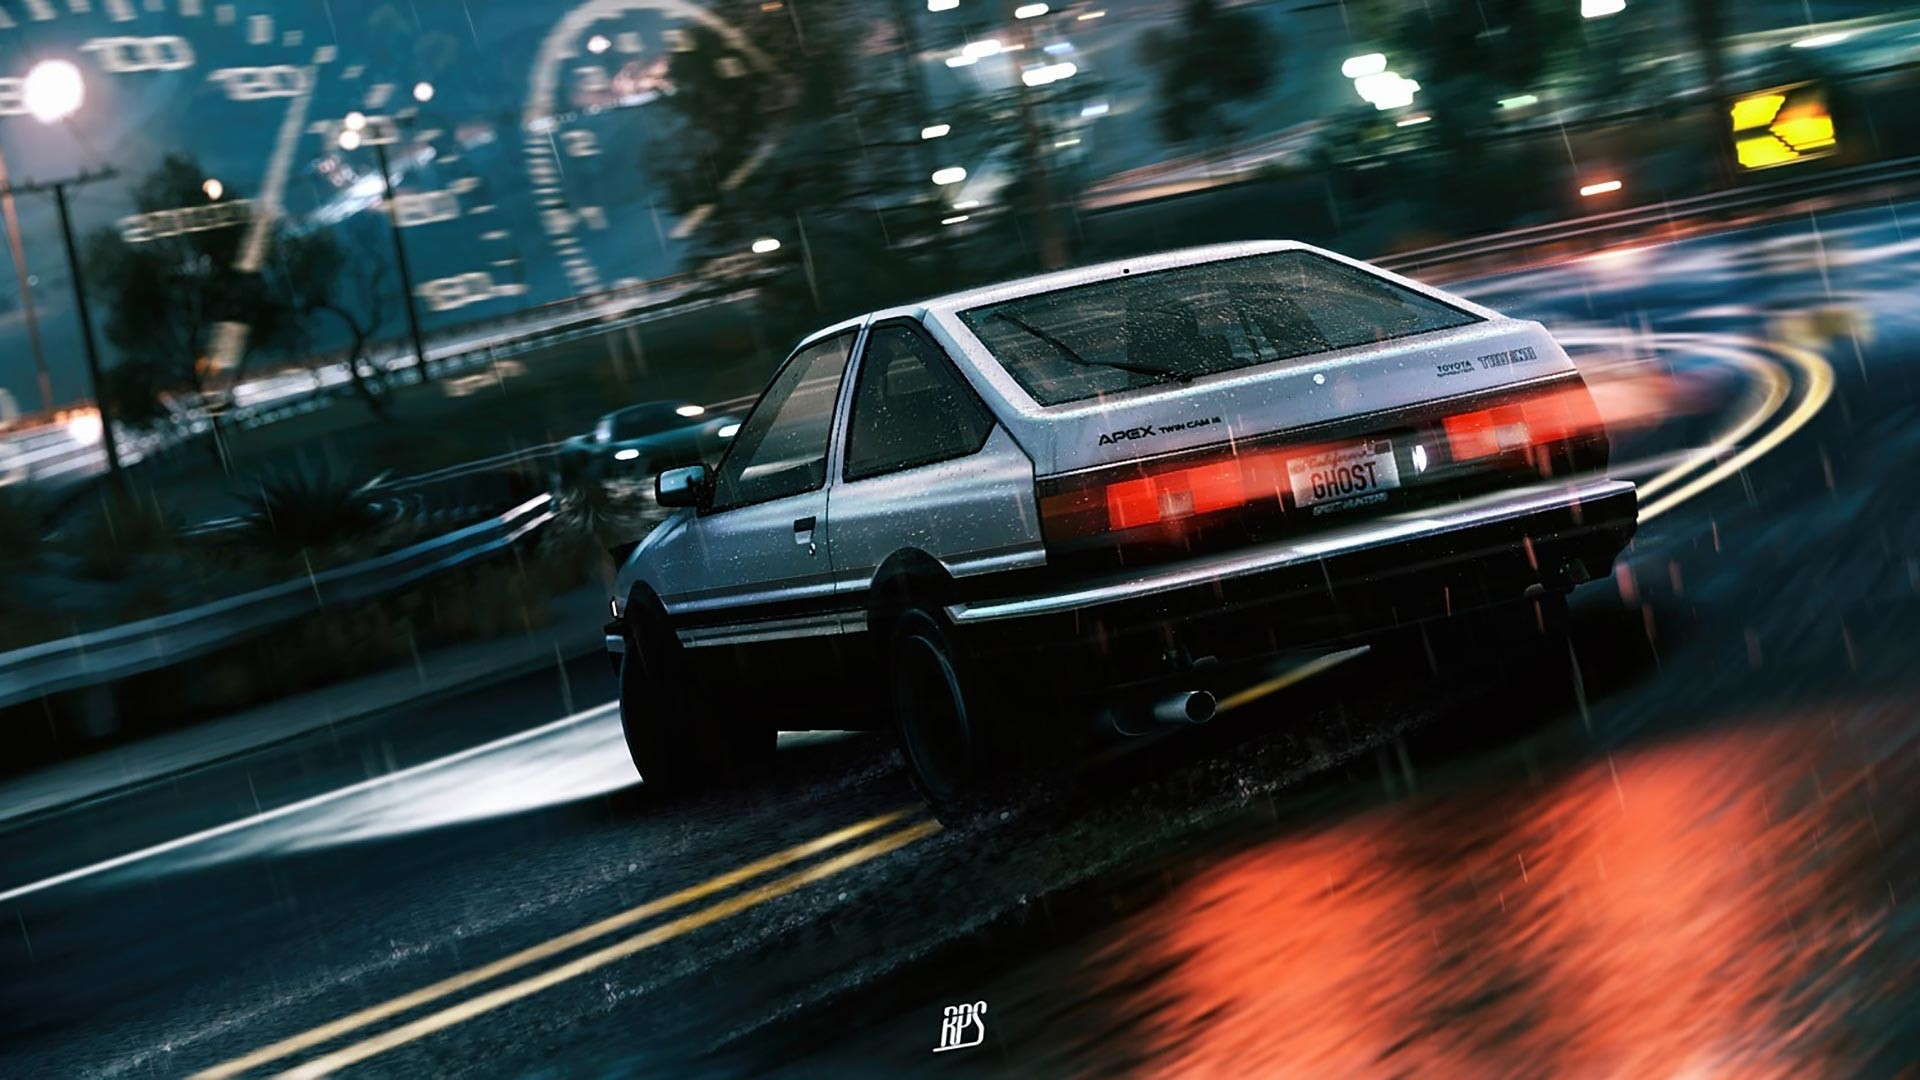 initial d wallpaper hd (62+ images)